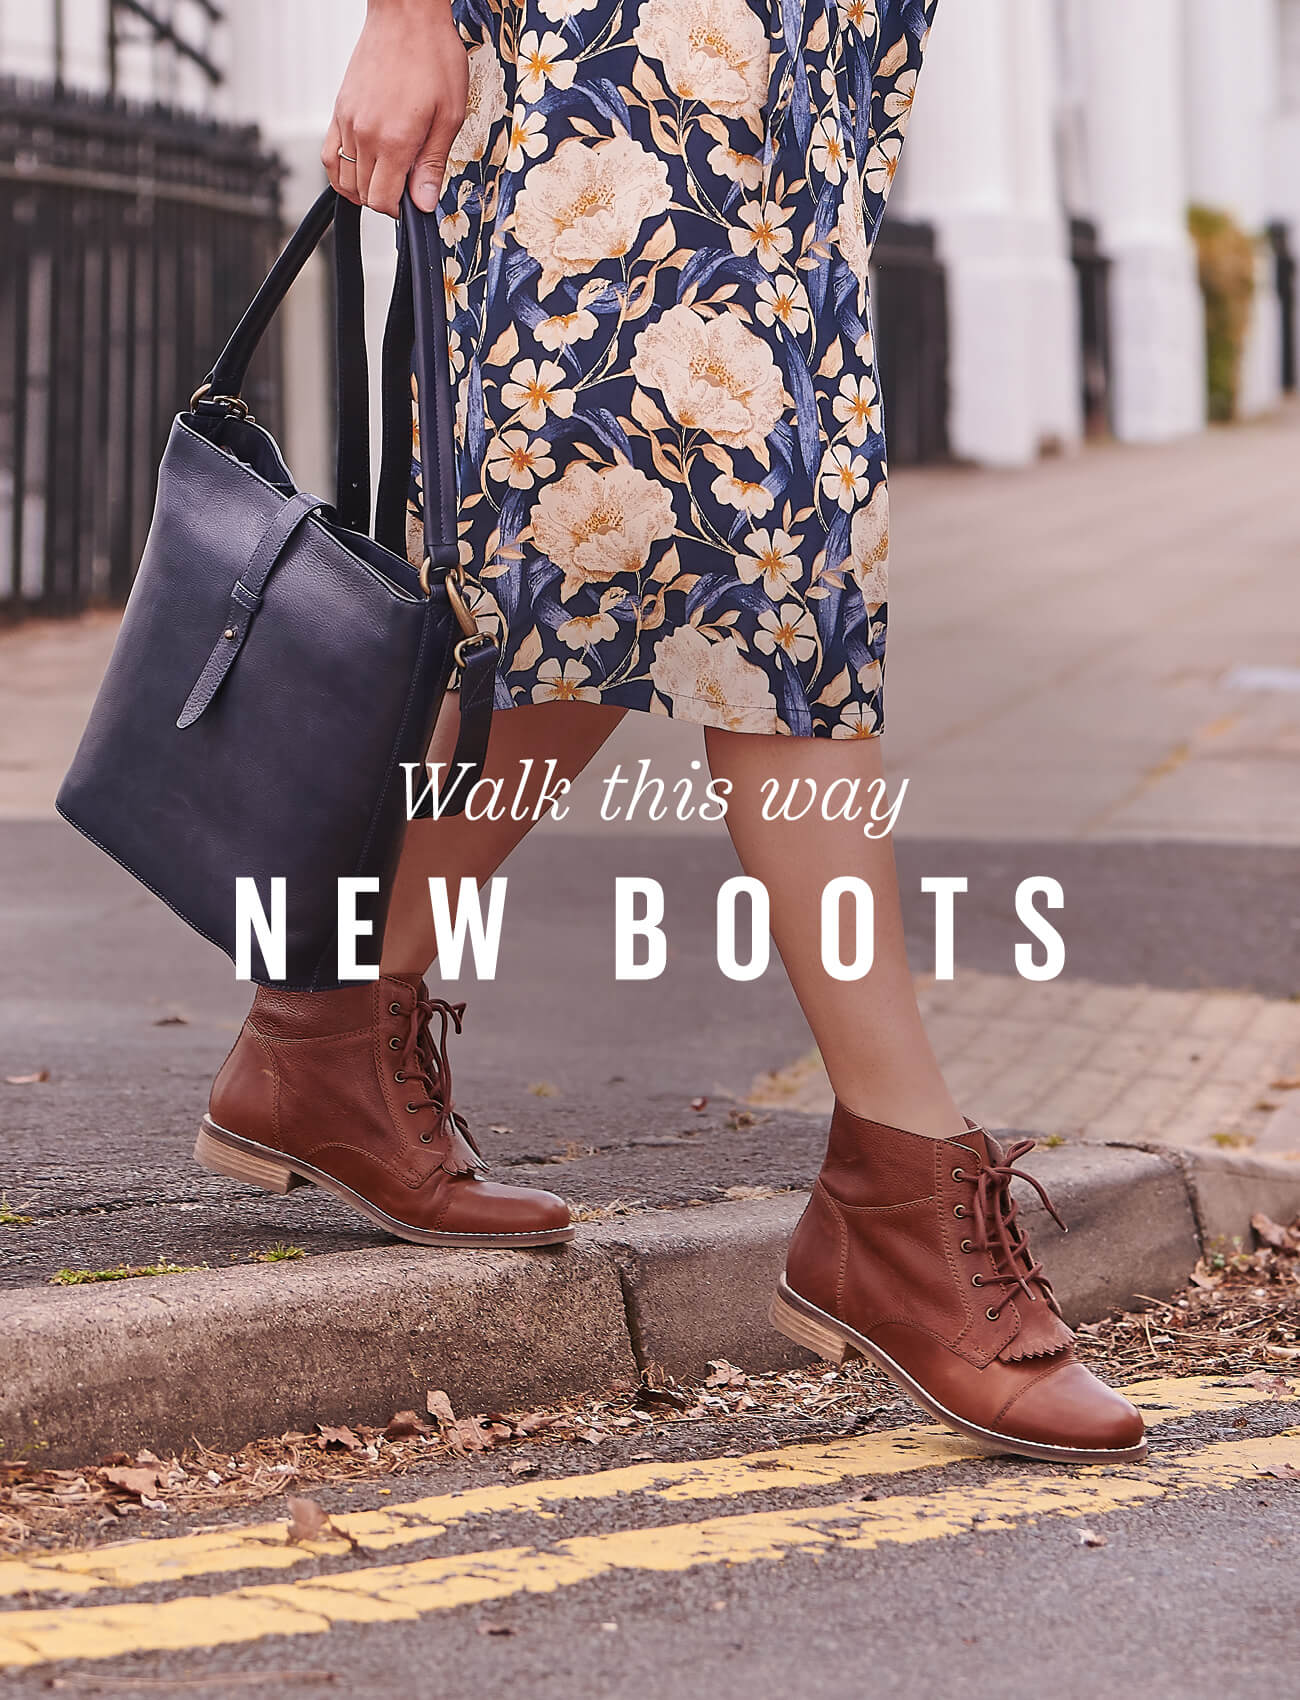 Fat Face UK: New boots with 15% off